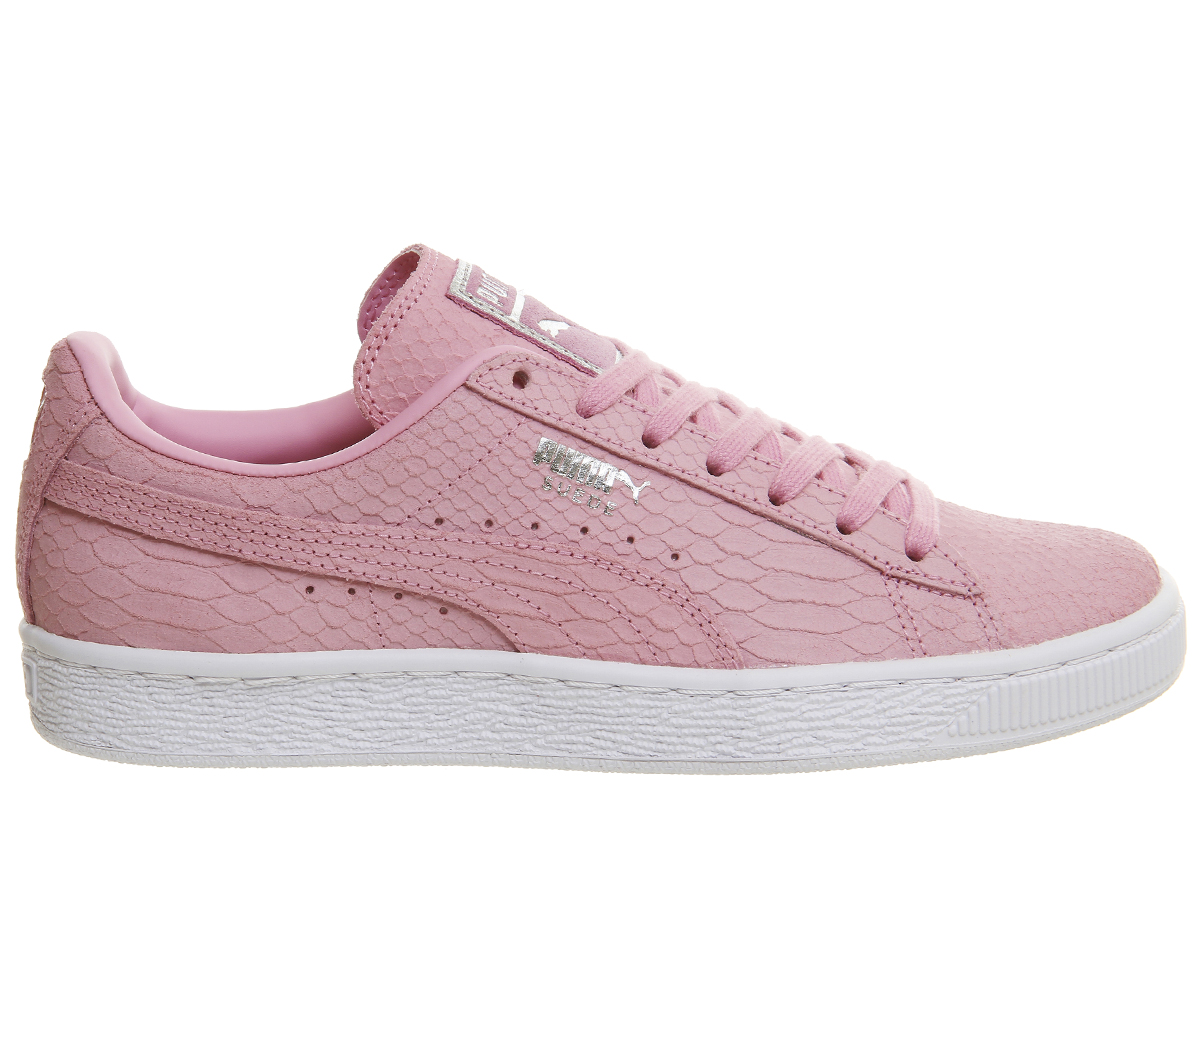 91a3f82a6 Sentinel Womens Puma Suede Classic Prism Pink White Exotic Trainers Shoes